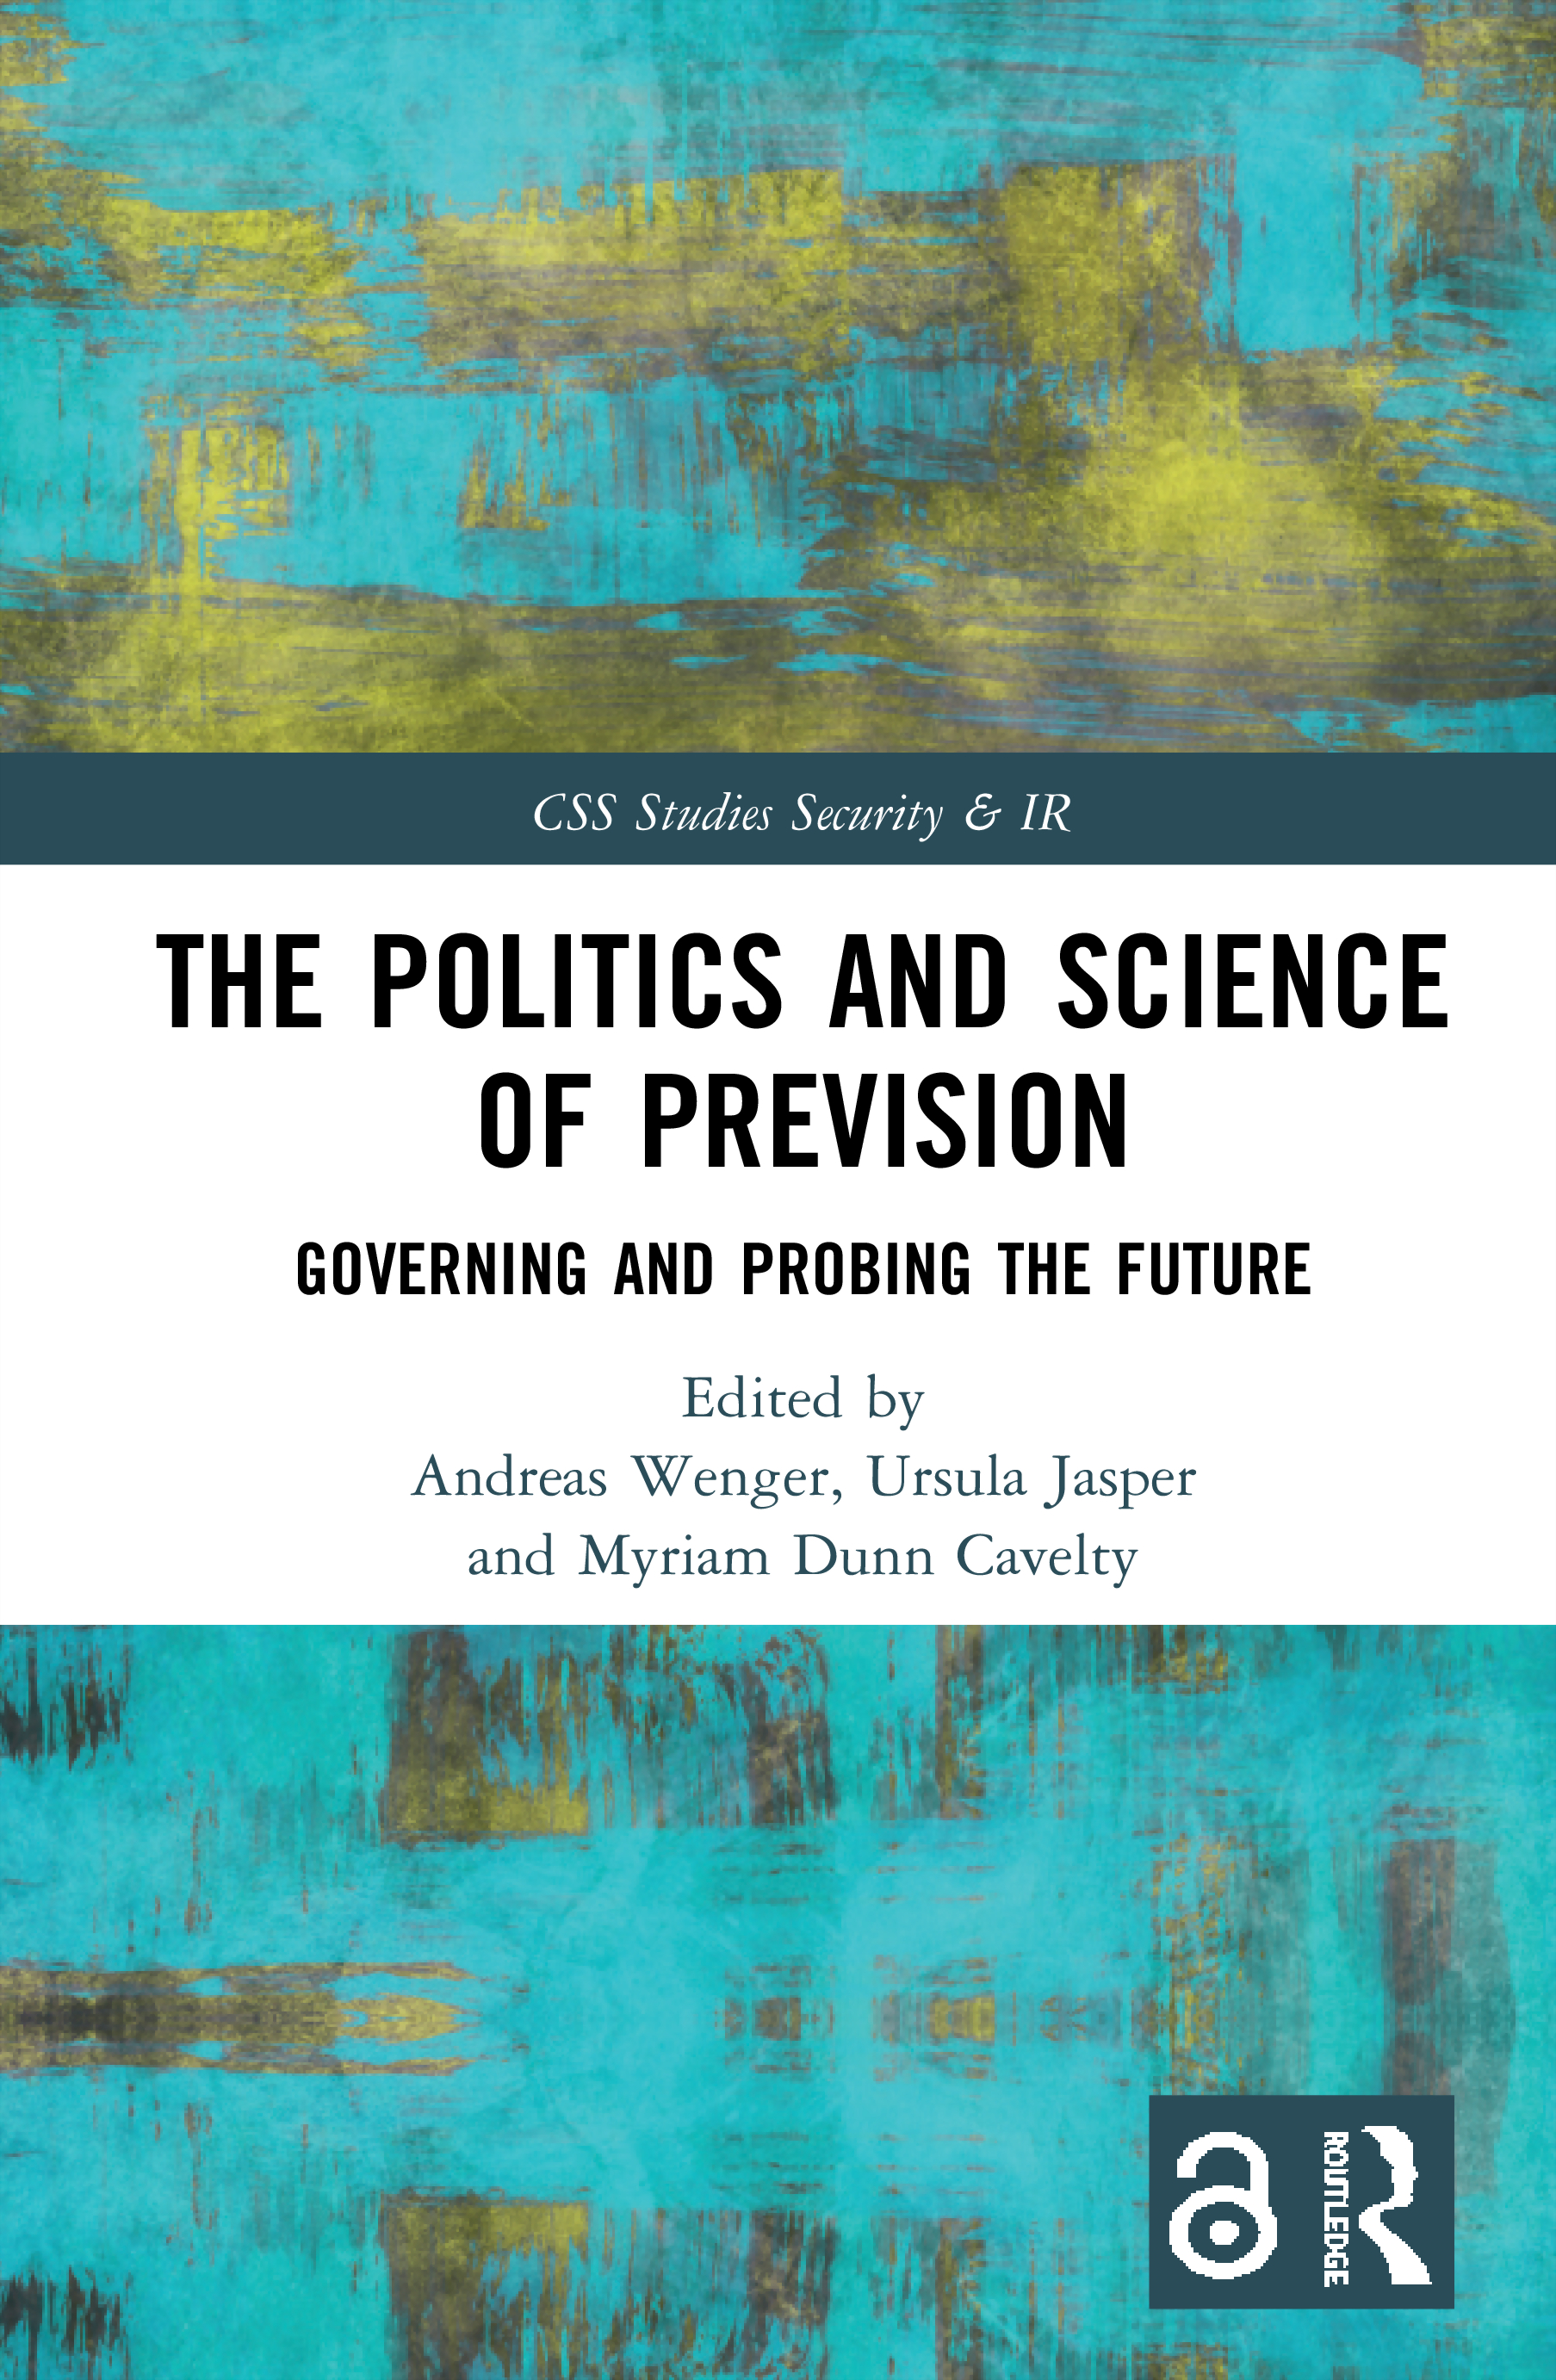 The Politics and Science of Prevision (Open Access): Governing and Probing the Future book cover